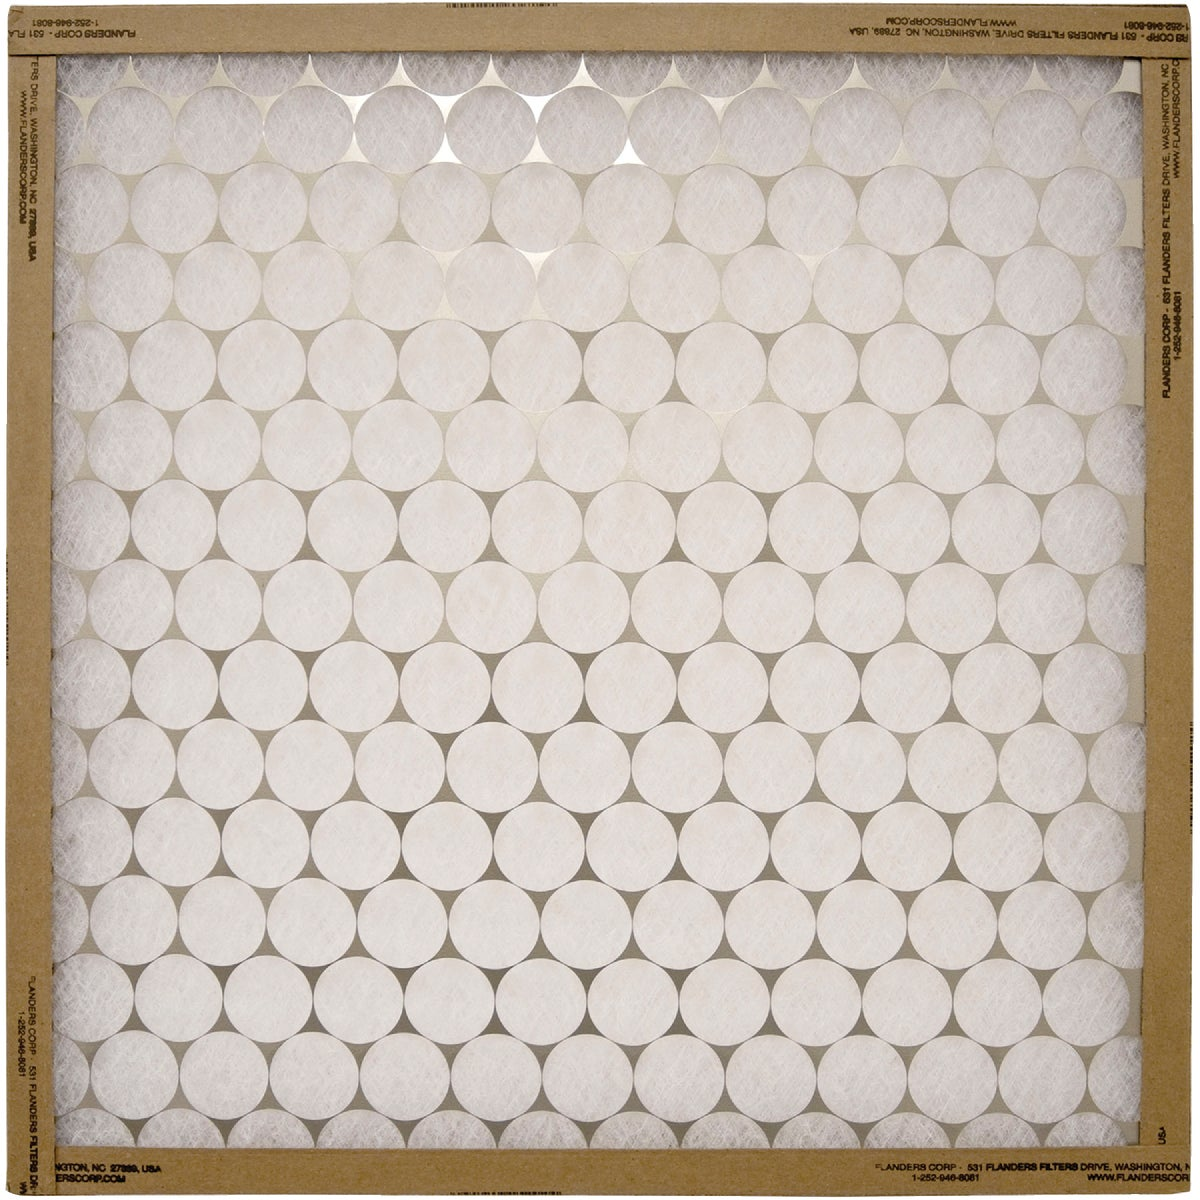 14X25 FURNACE FILTER - 10255.011425 by Flanders Corp